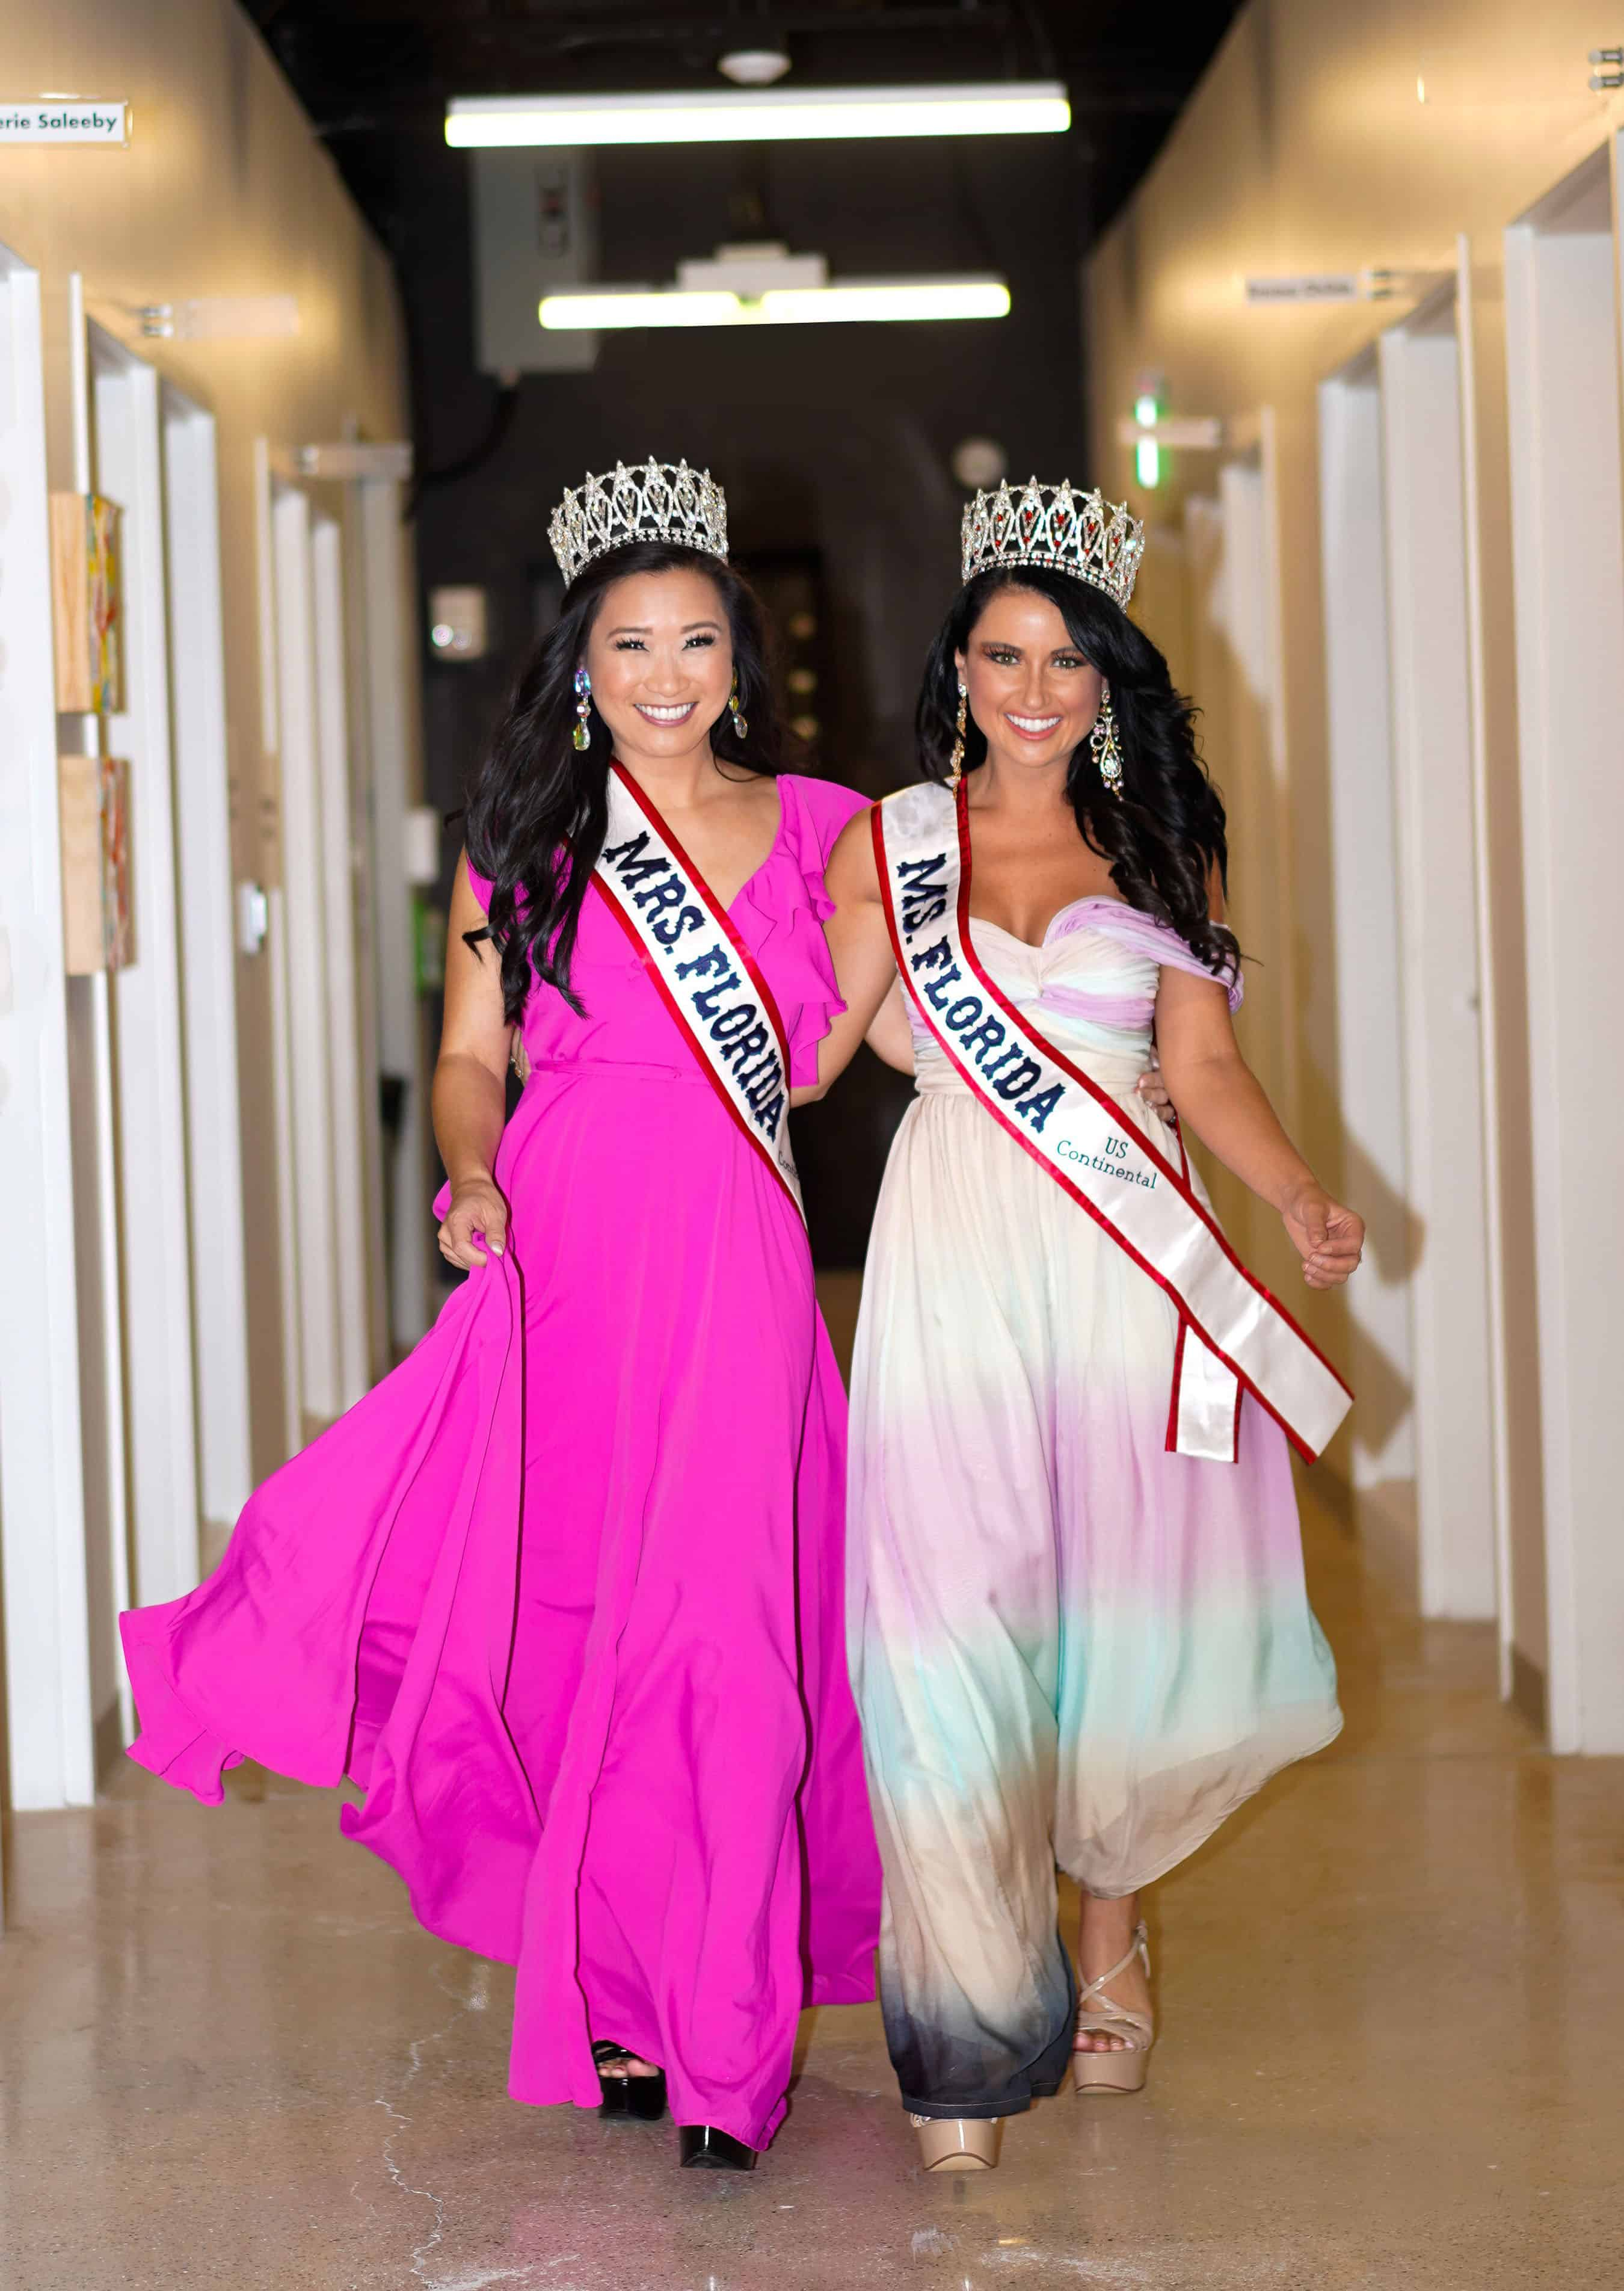 Keiser University Congratulates Alumna and Spirit Team Coach for Recent Pageant Titles